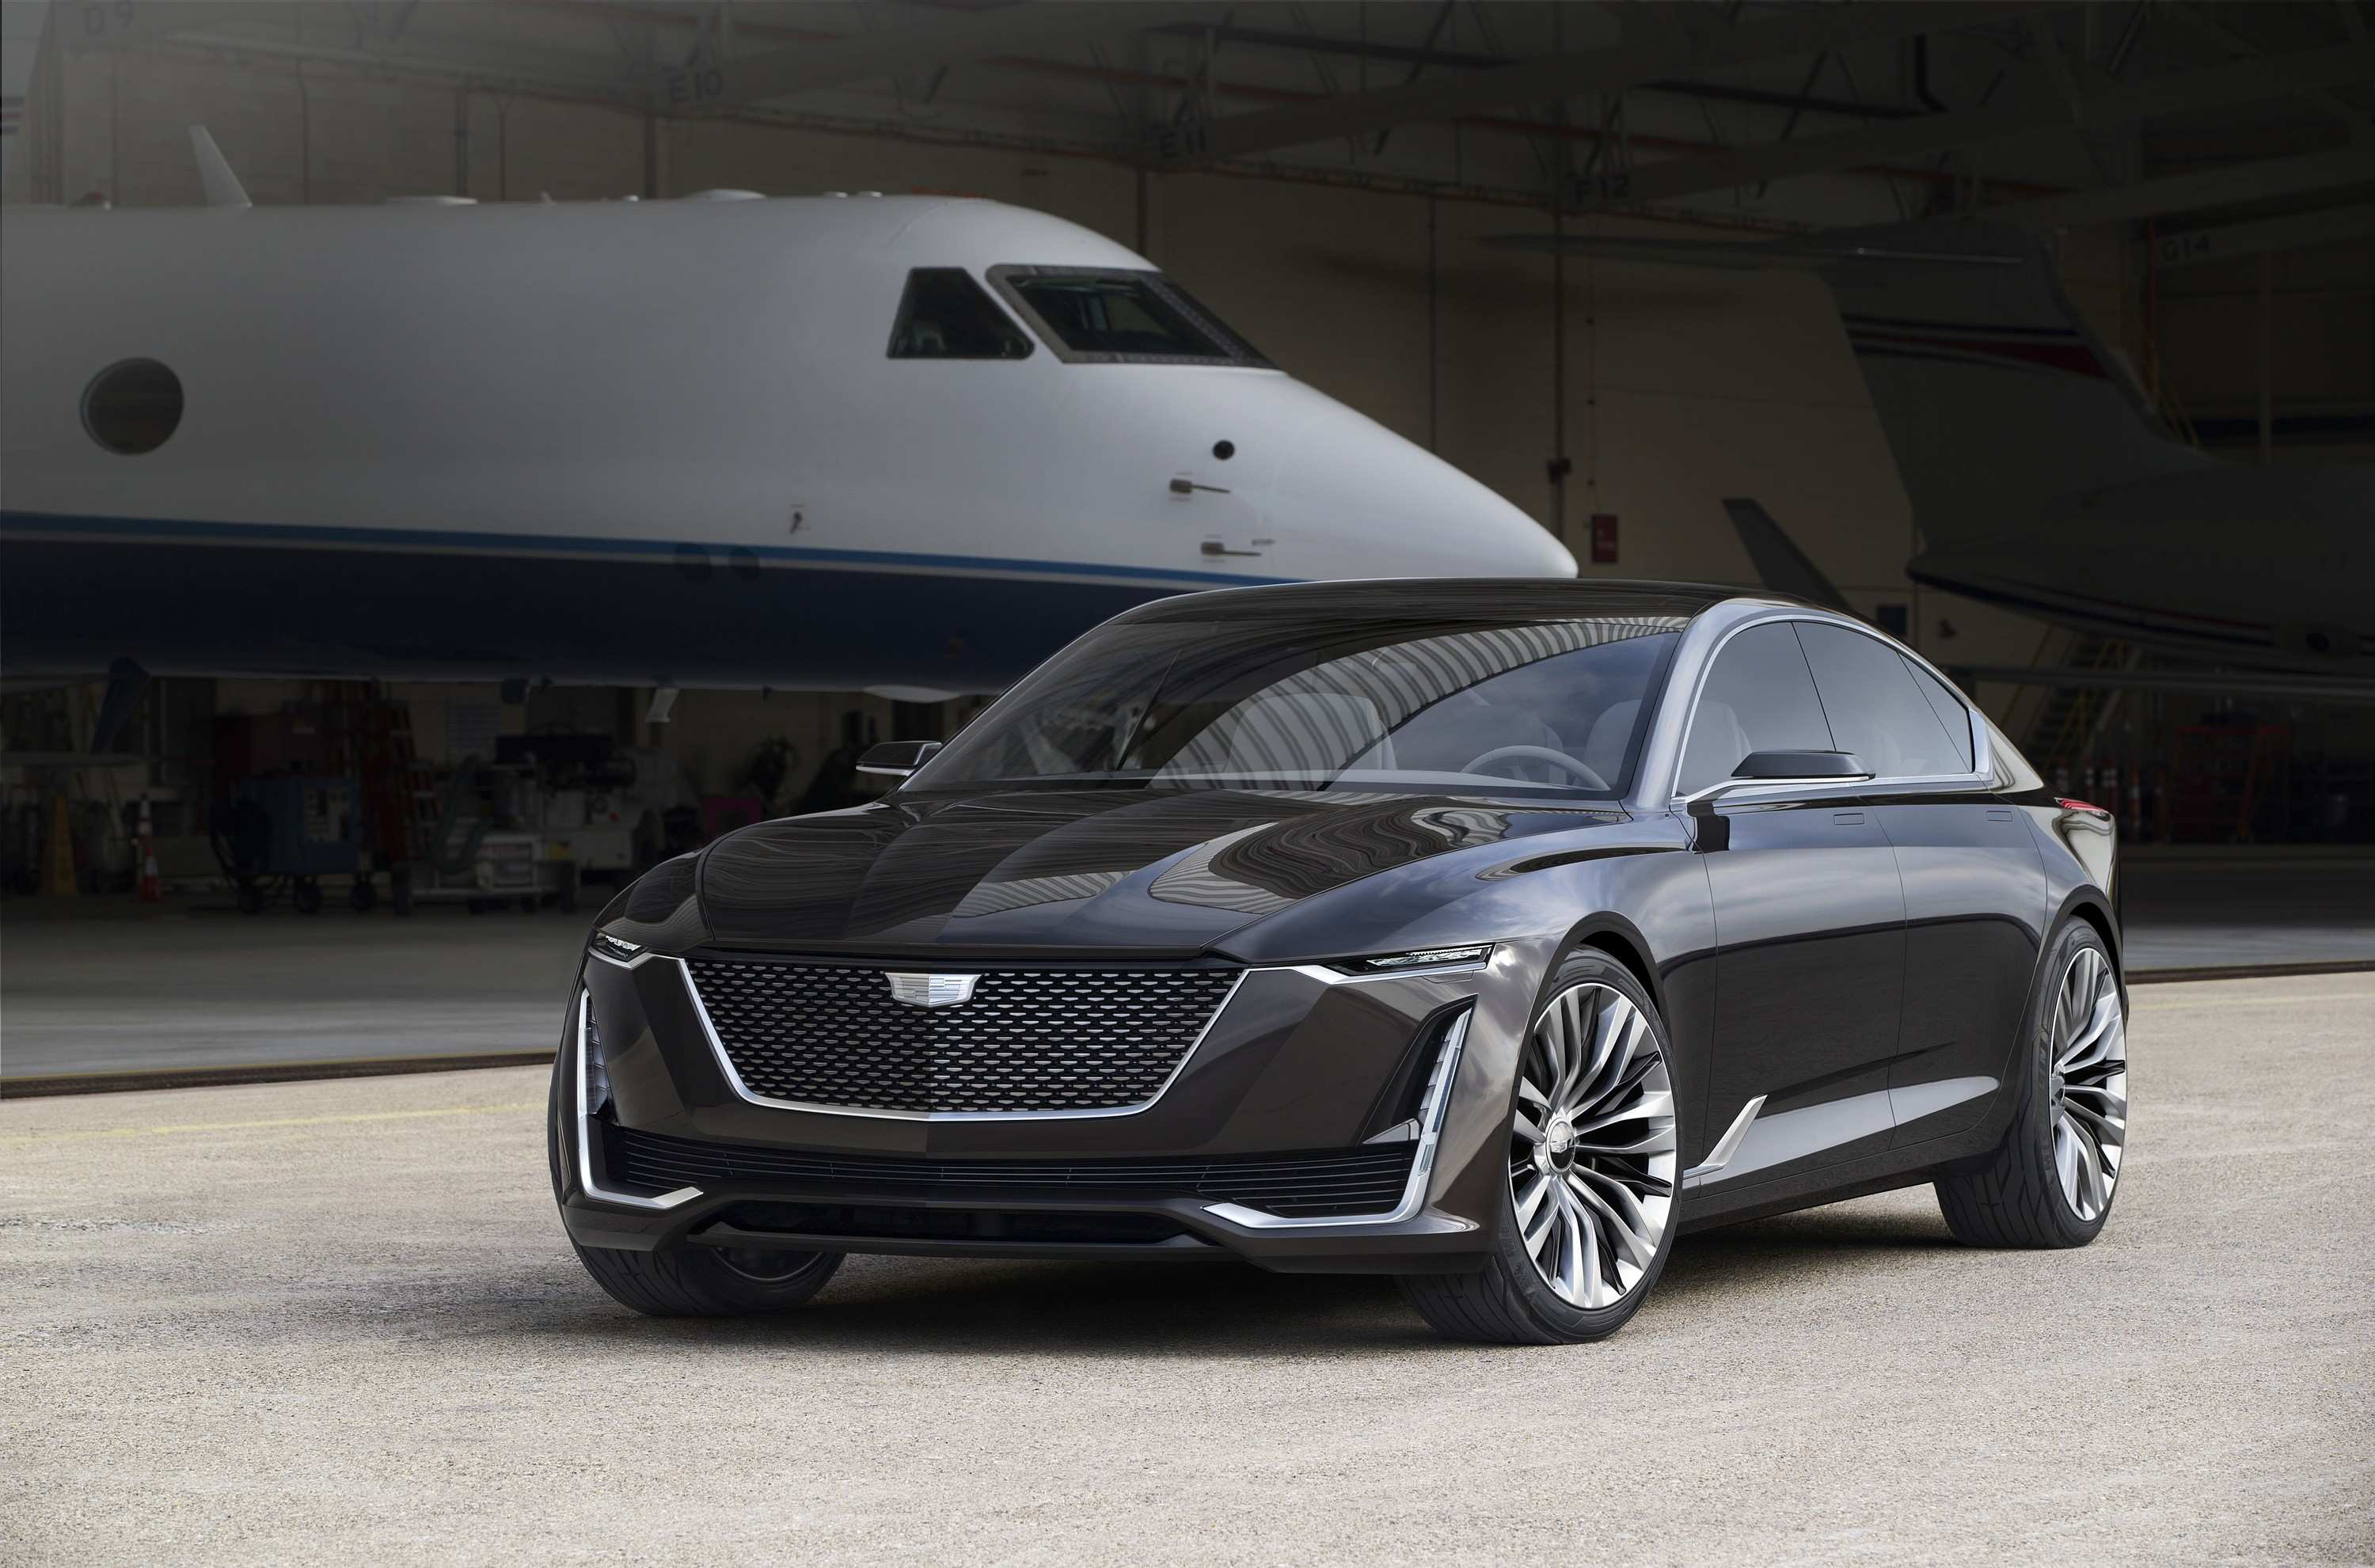 53 A Will There Be A 2020 Cadillac Xts History